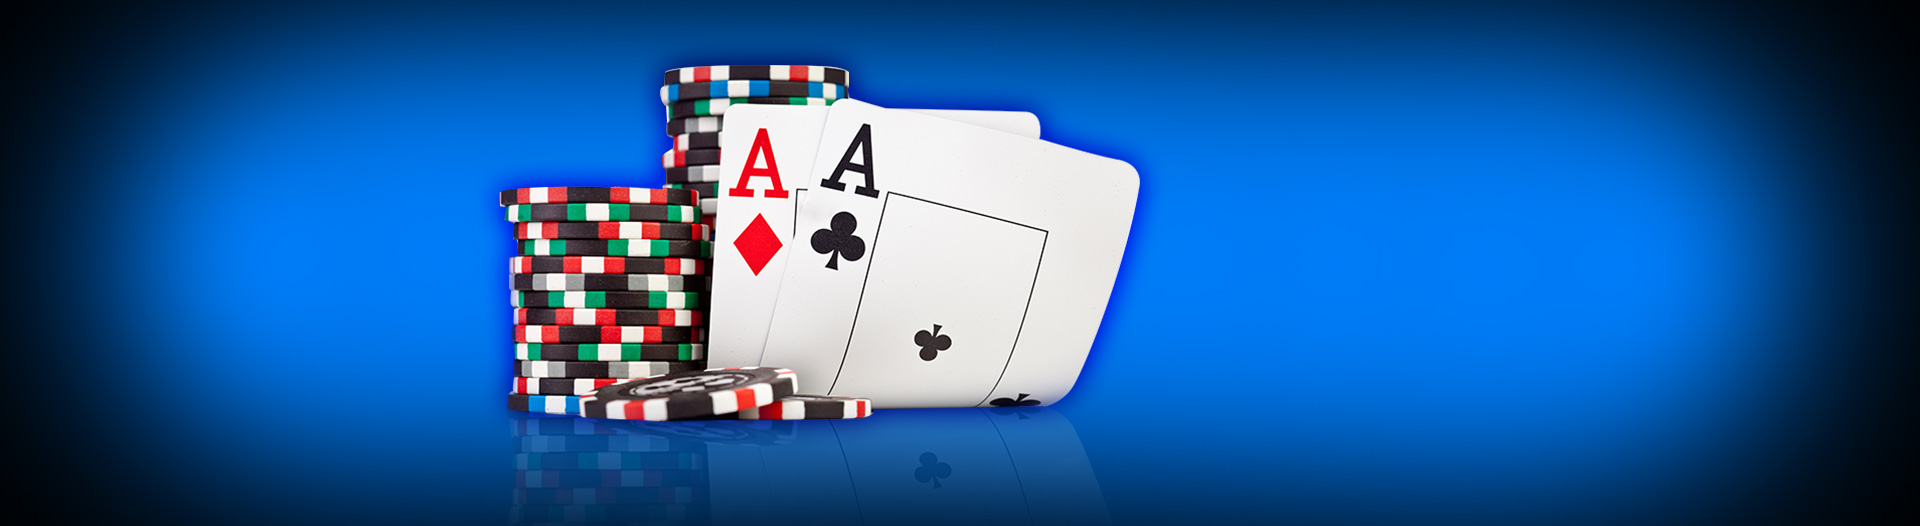 Pokerstars download bono sin deposito casino Almada - 83265